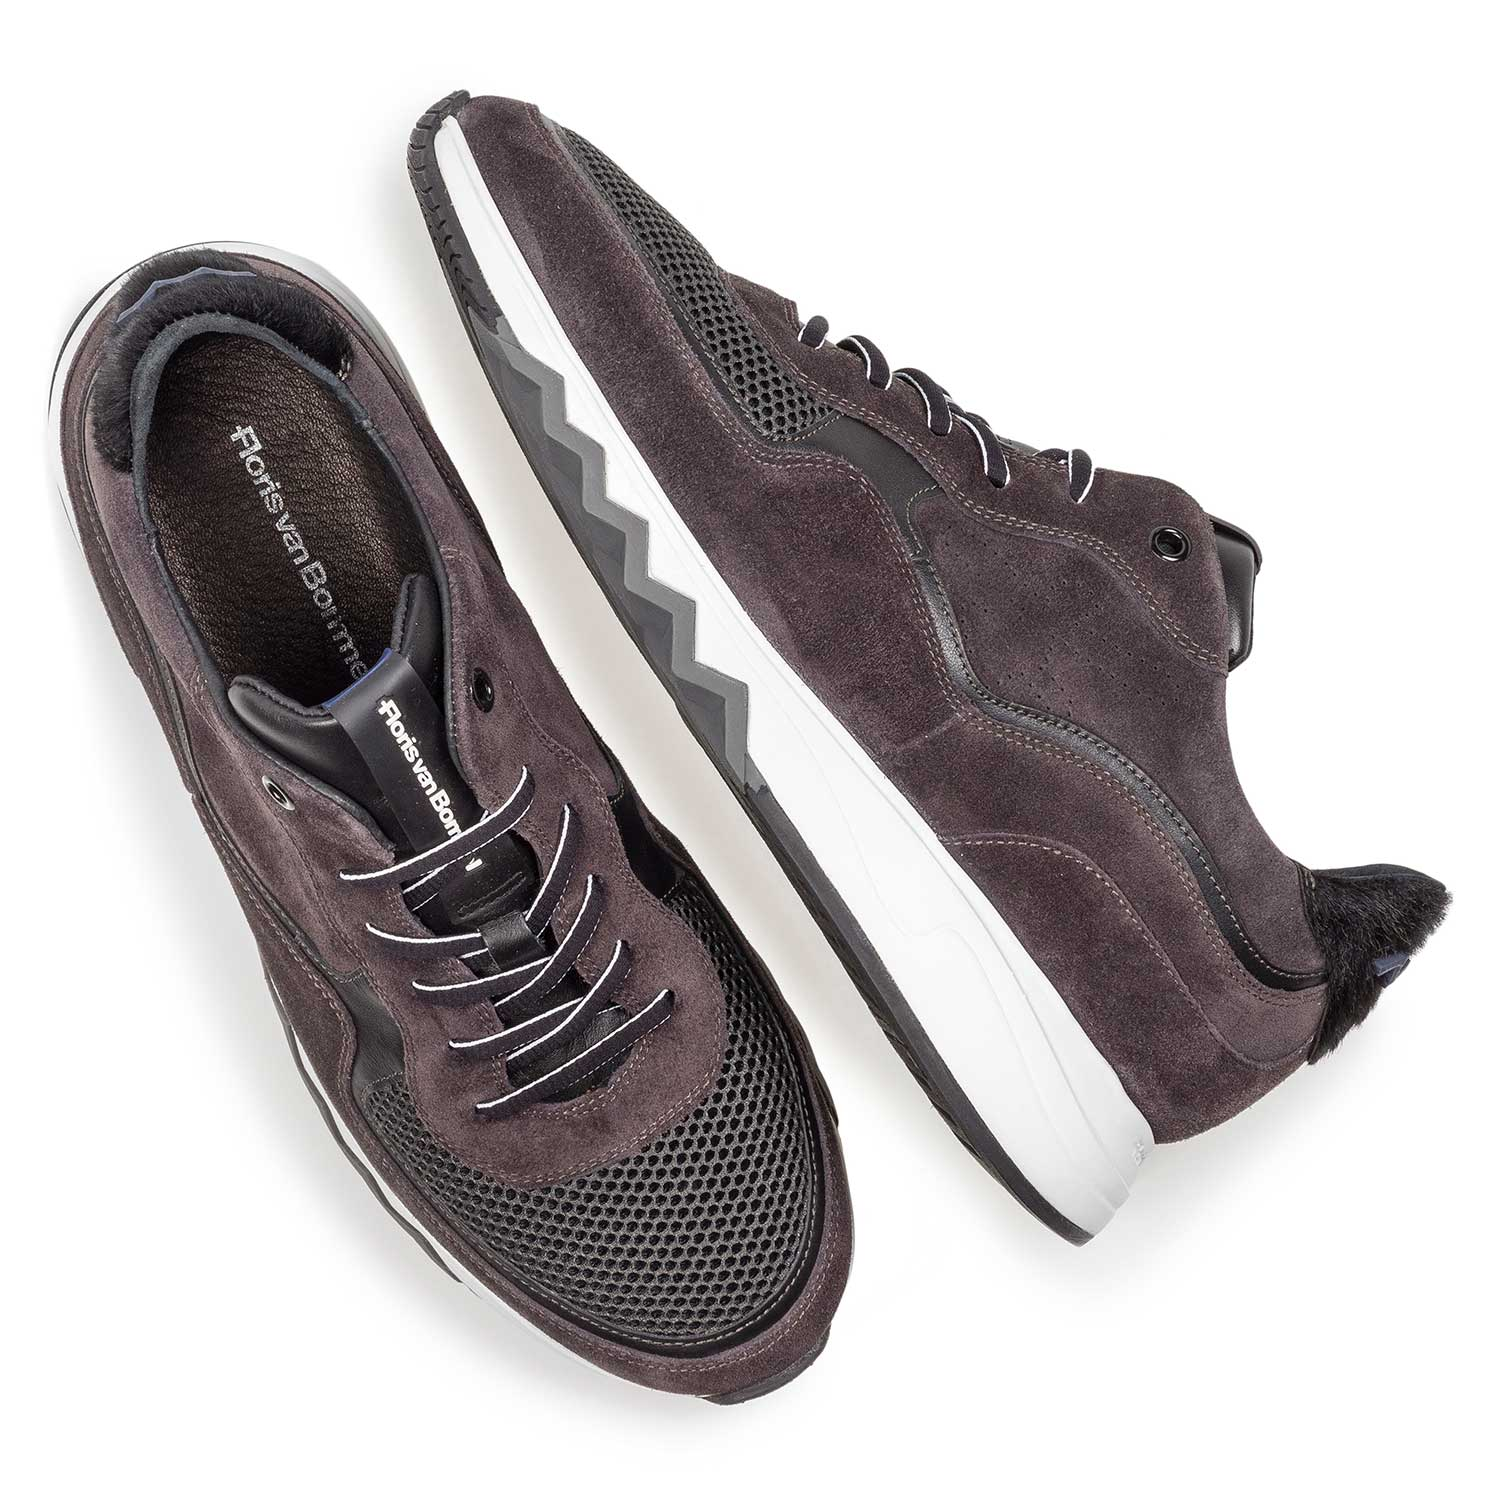 16093/16 - Anthracite and brown suede leather sneaker